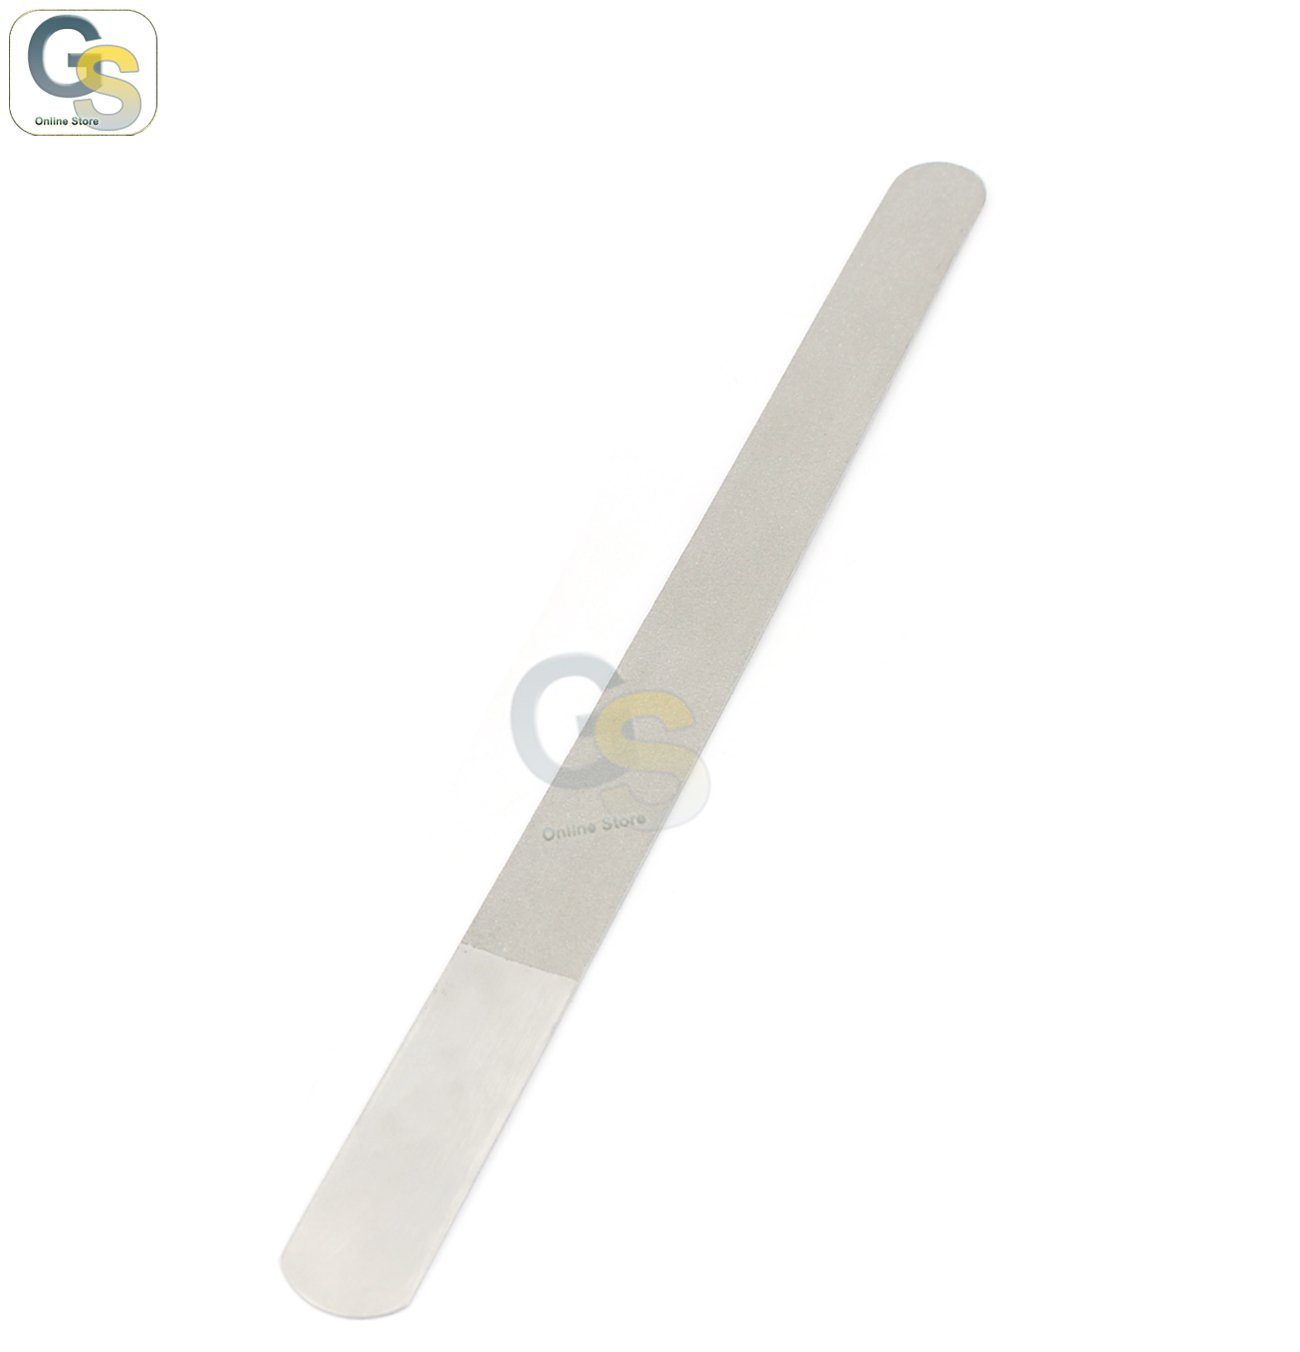 G S 8 Diamond Deb Nail File Double Side Care Podiatry Stainless Steel